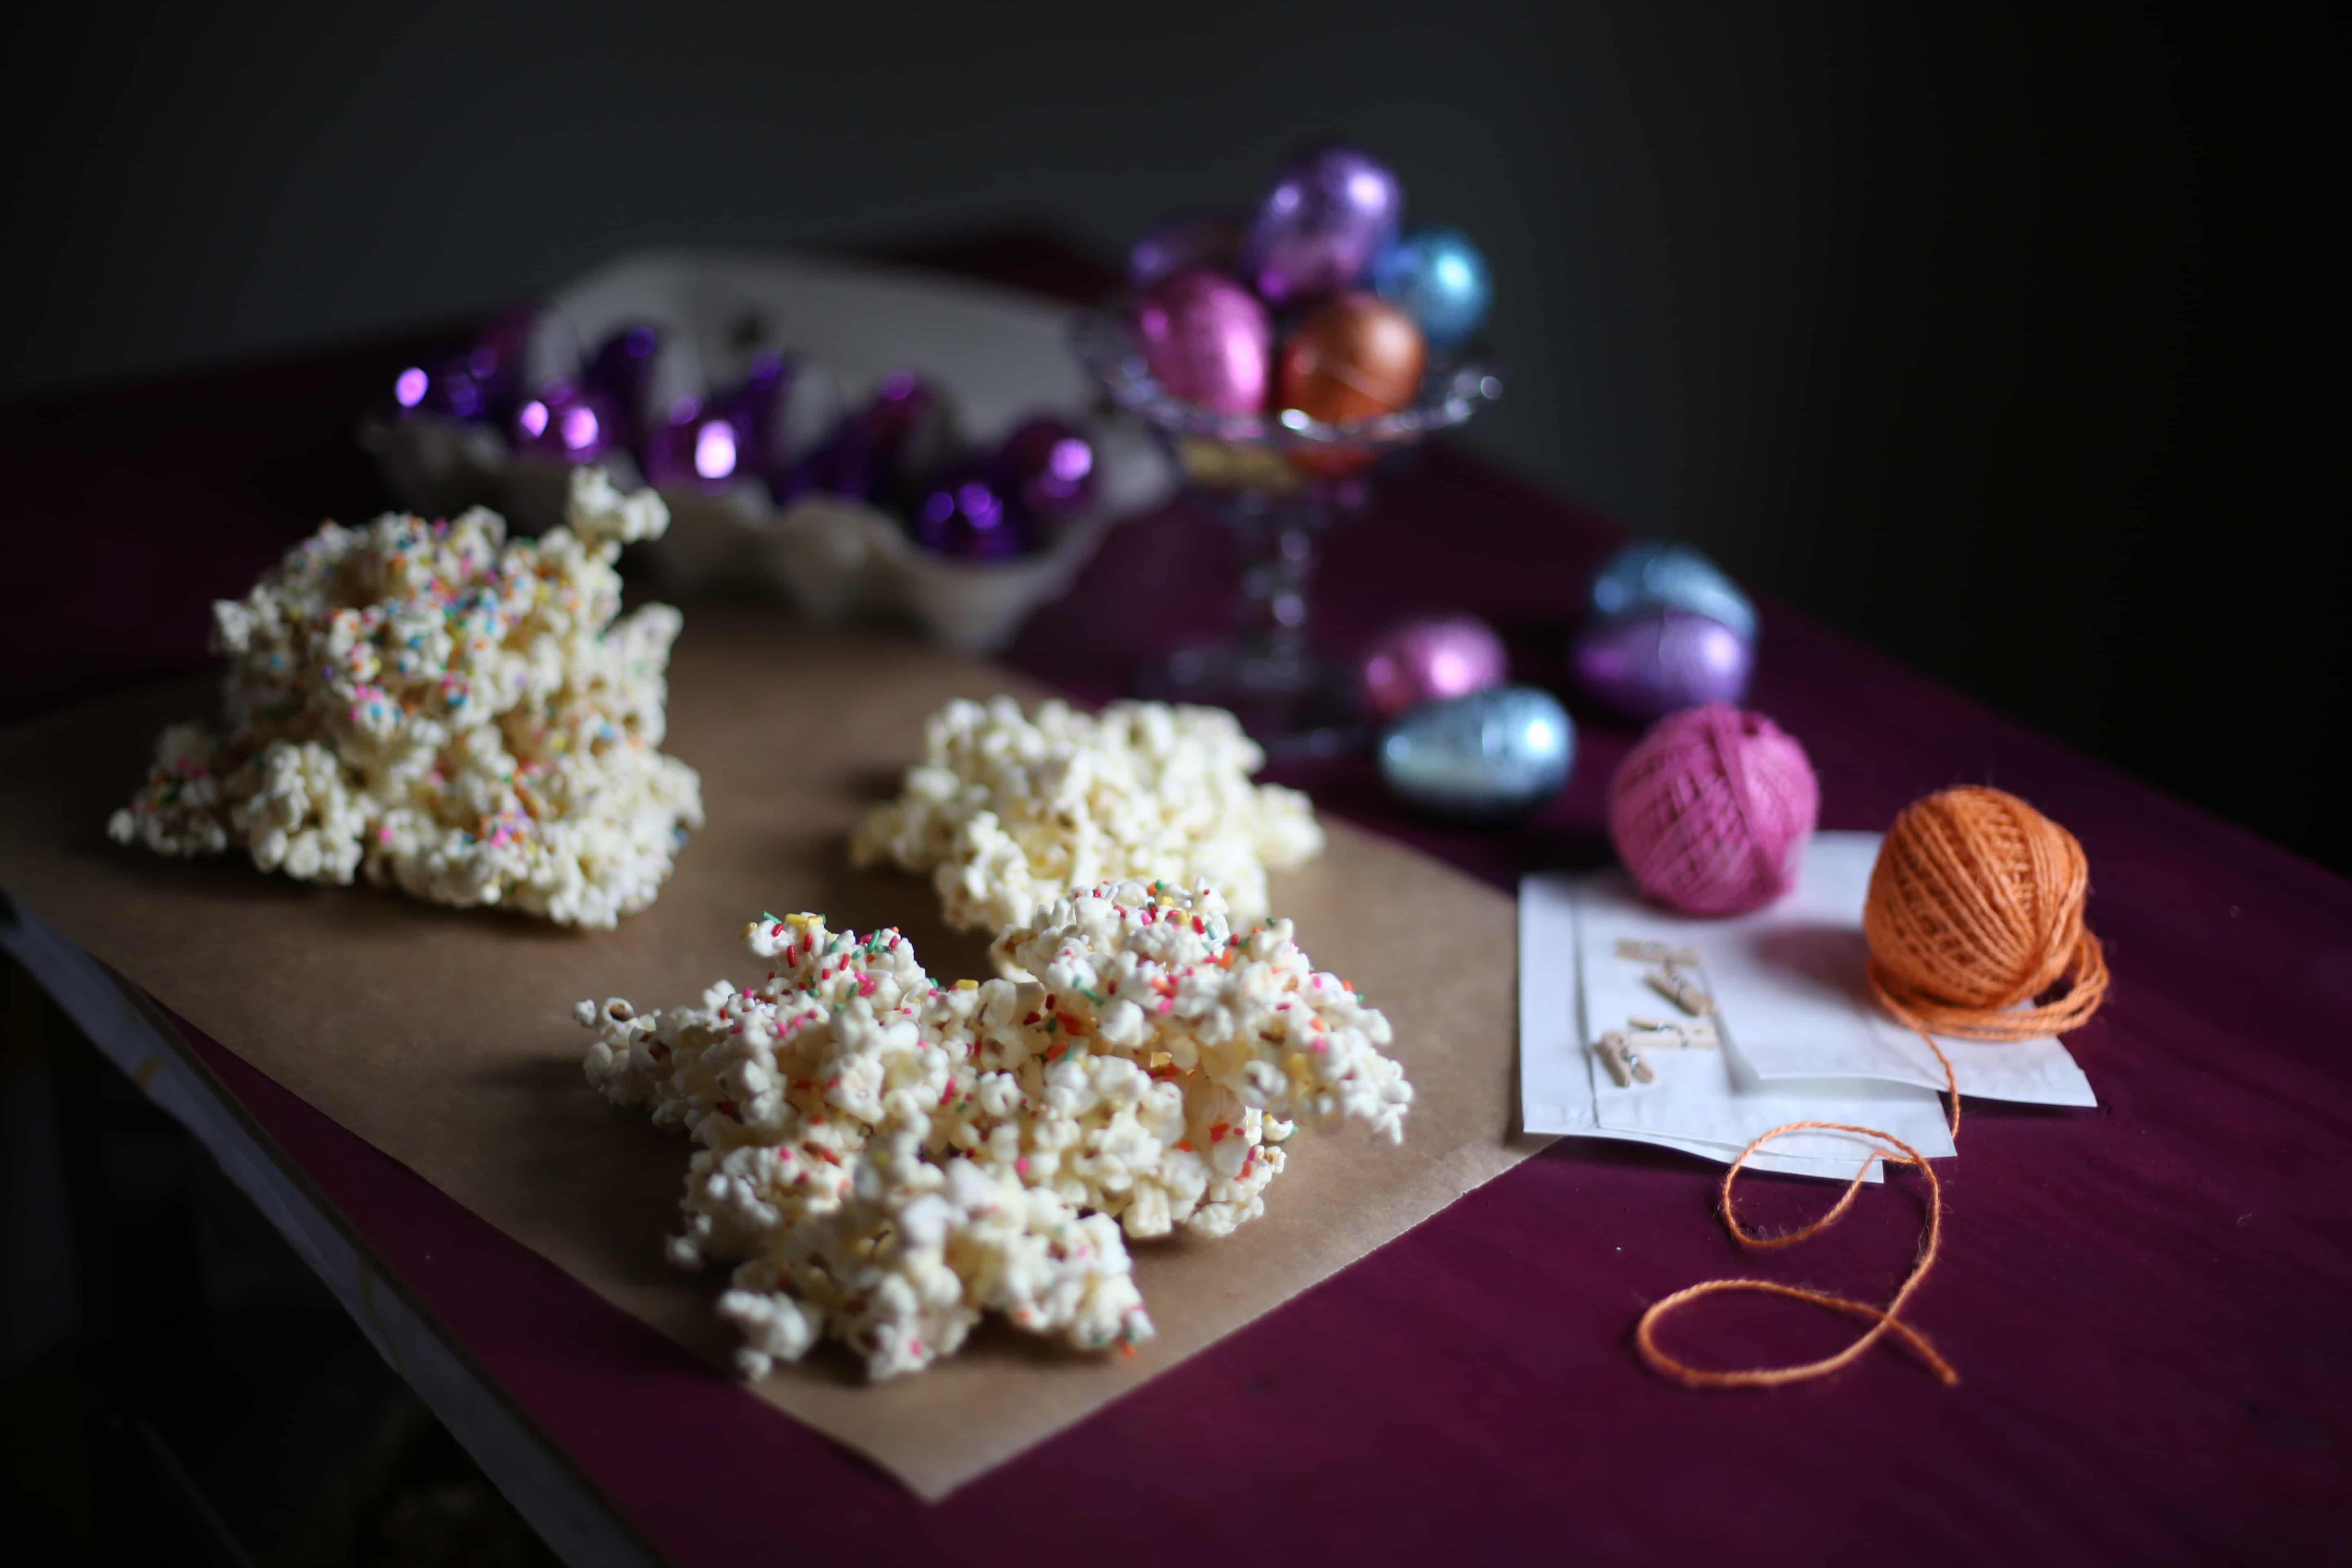 popcorn on a wooden table with decorations behind it